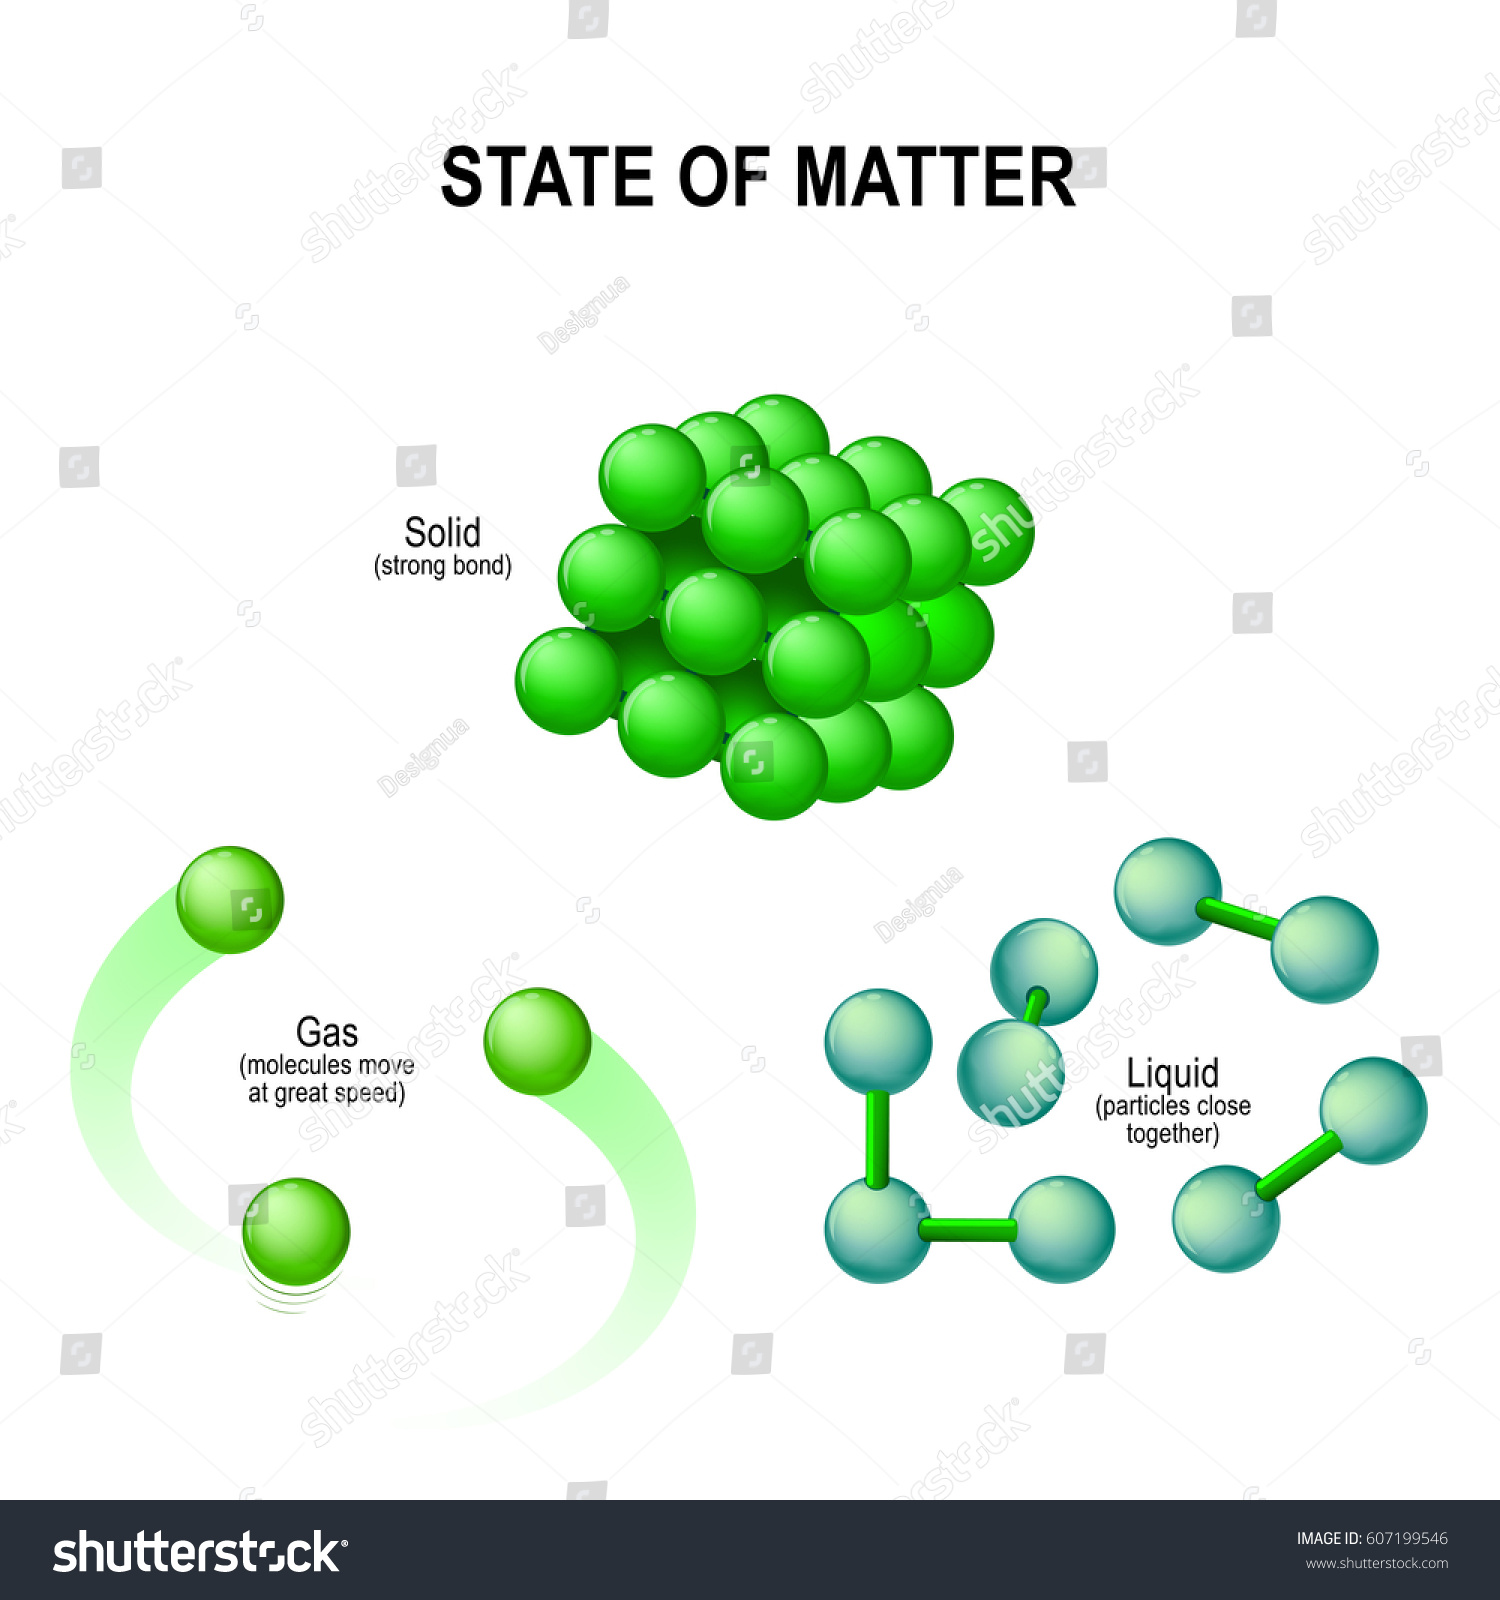 states matter example water solid ice stock vector royalty free rh shutterstock com Water Molecule Shape Simple Compound Structure H2O